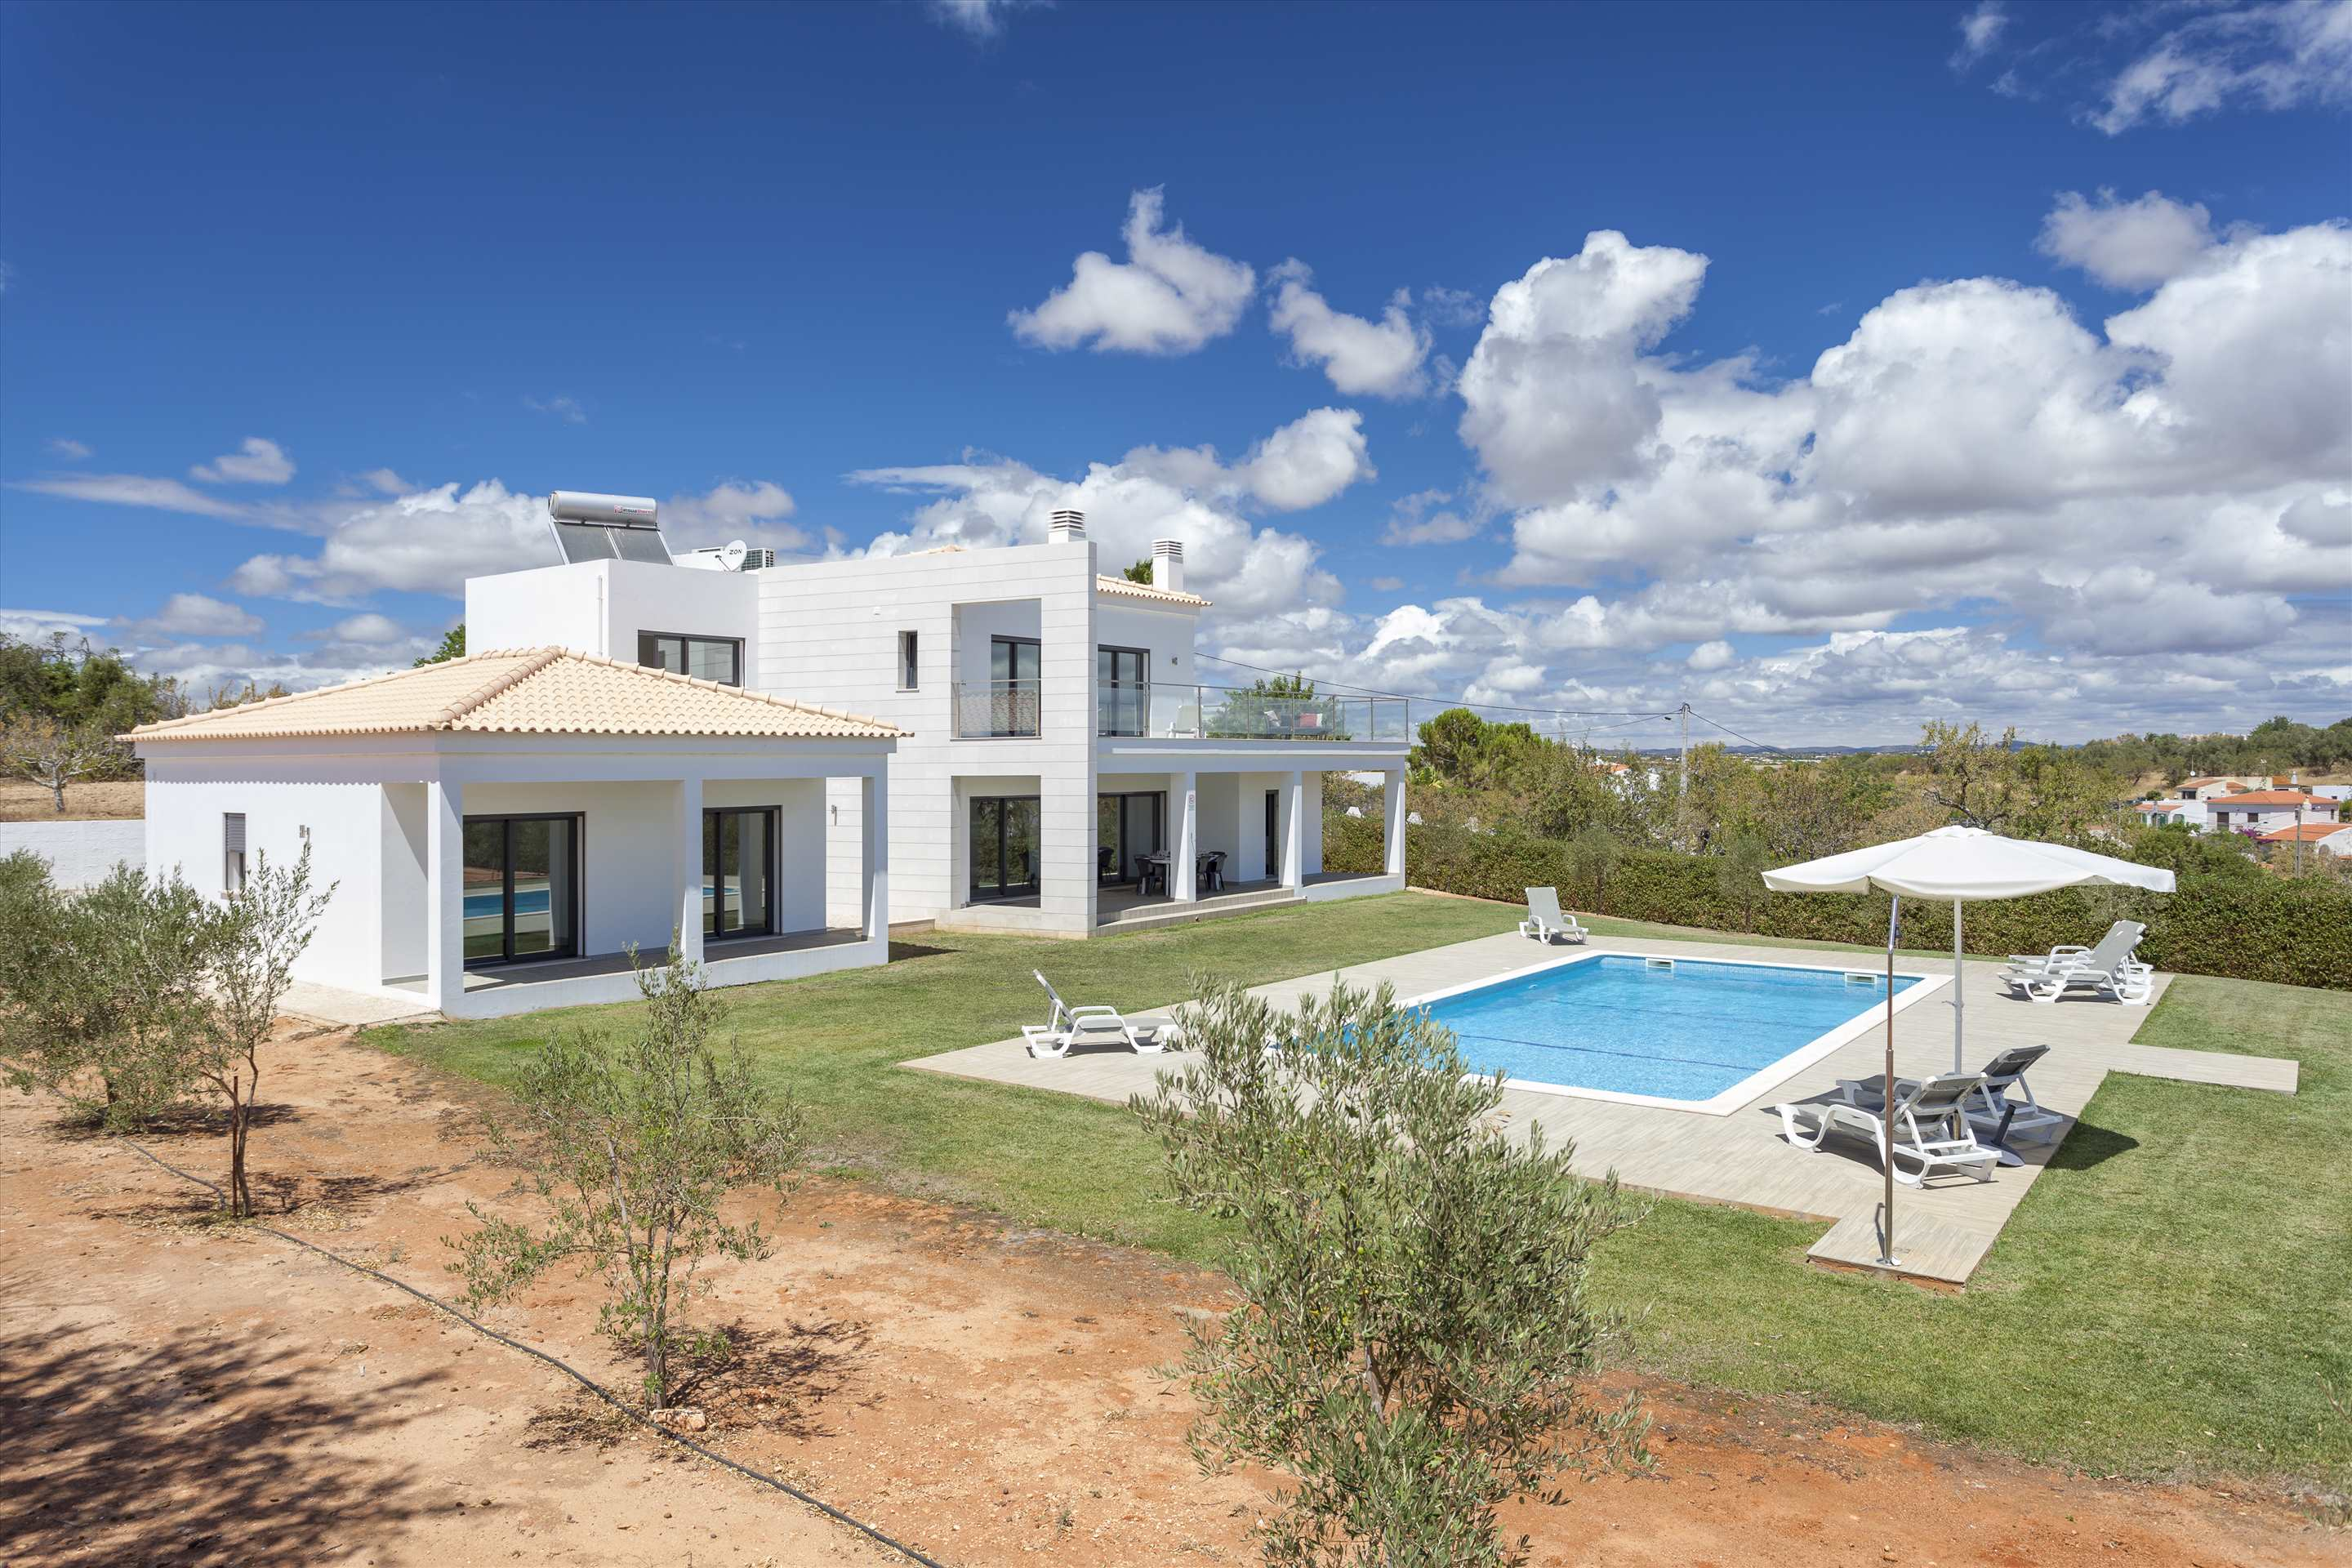 Casa Joana, 4 bedroom villa in Carvoeiro Area, Algarve